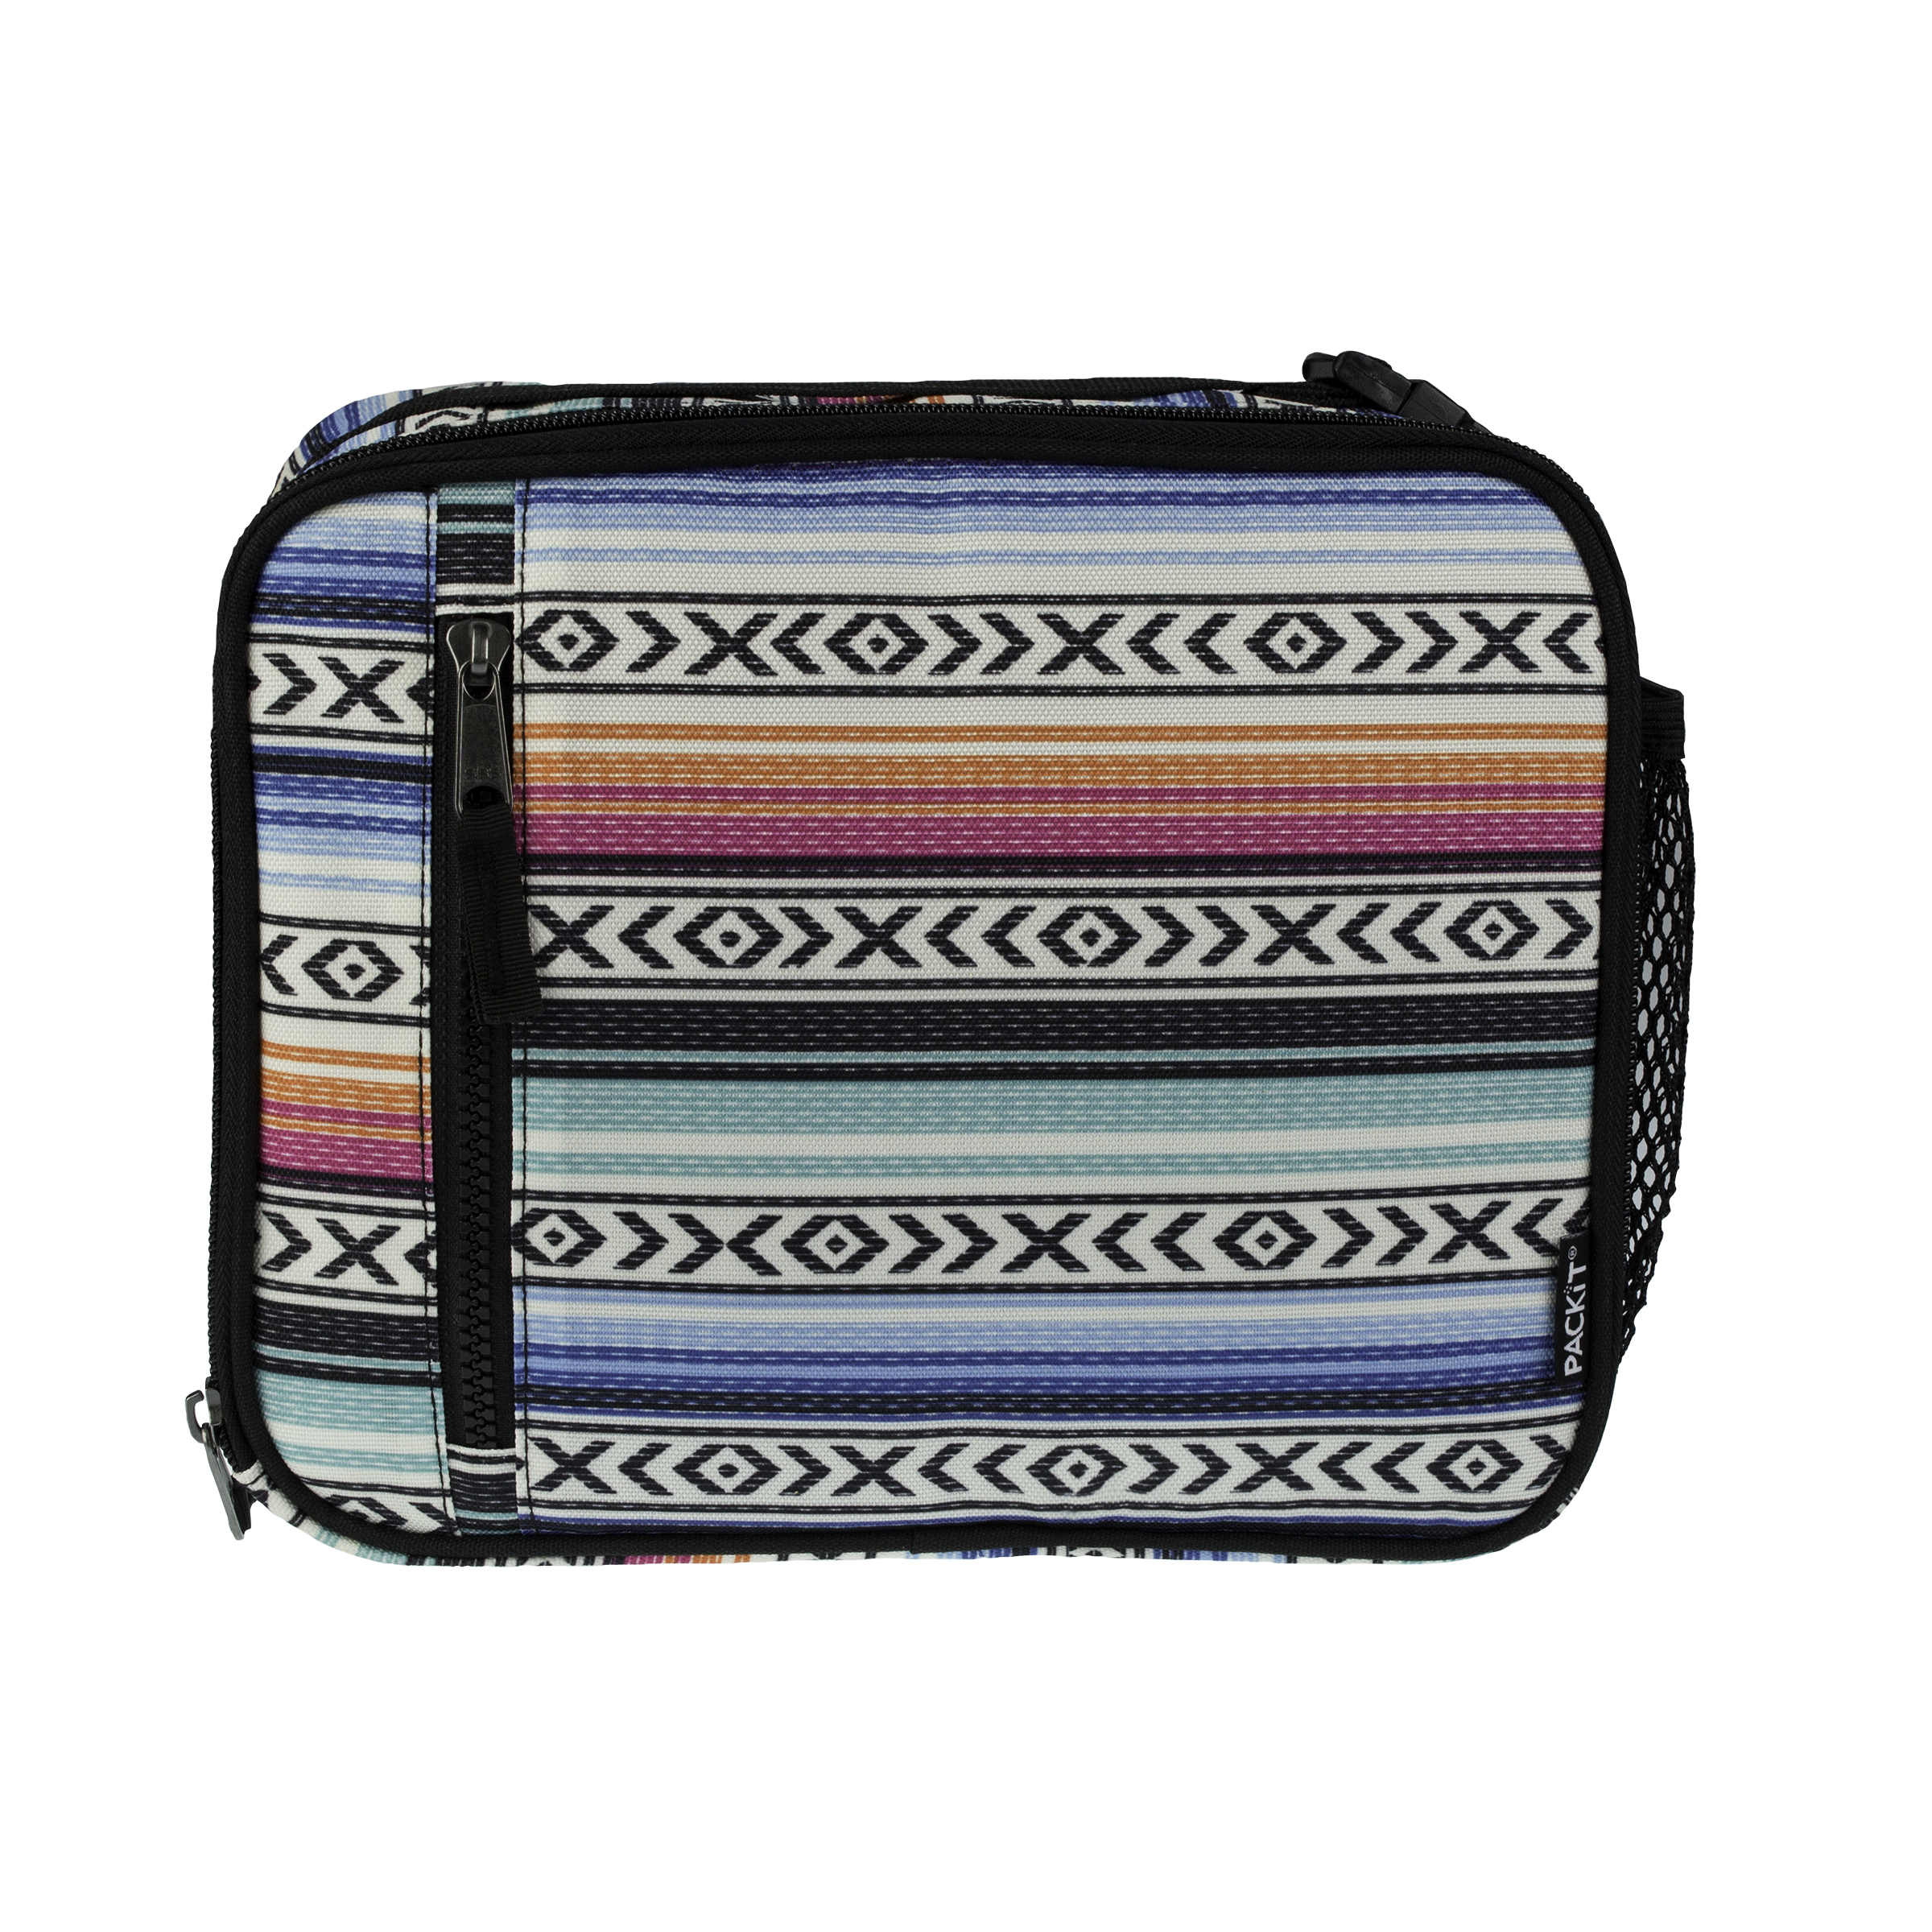 CLASSIC LUNCH BAG - FIESTA - PACKIT